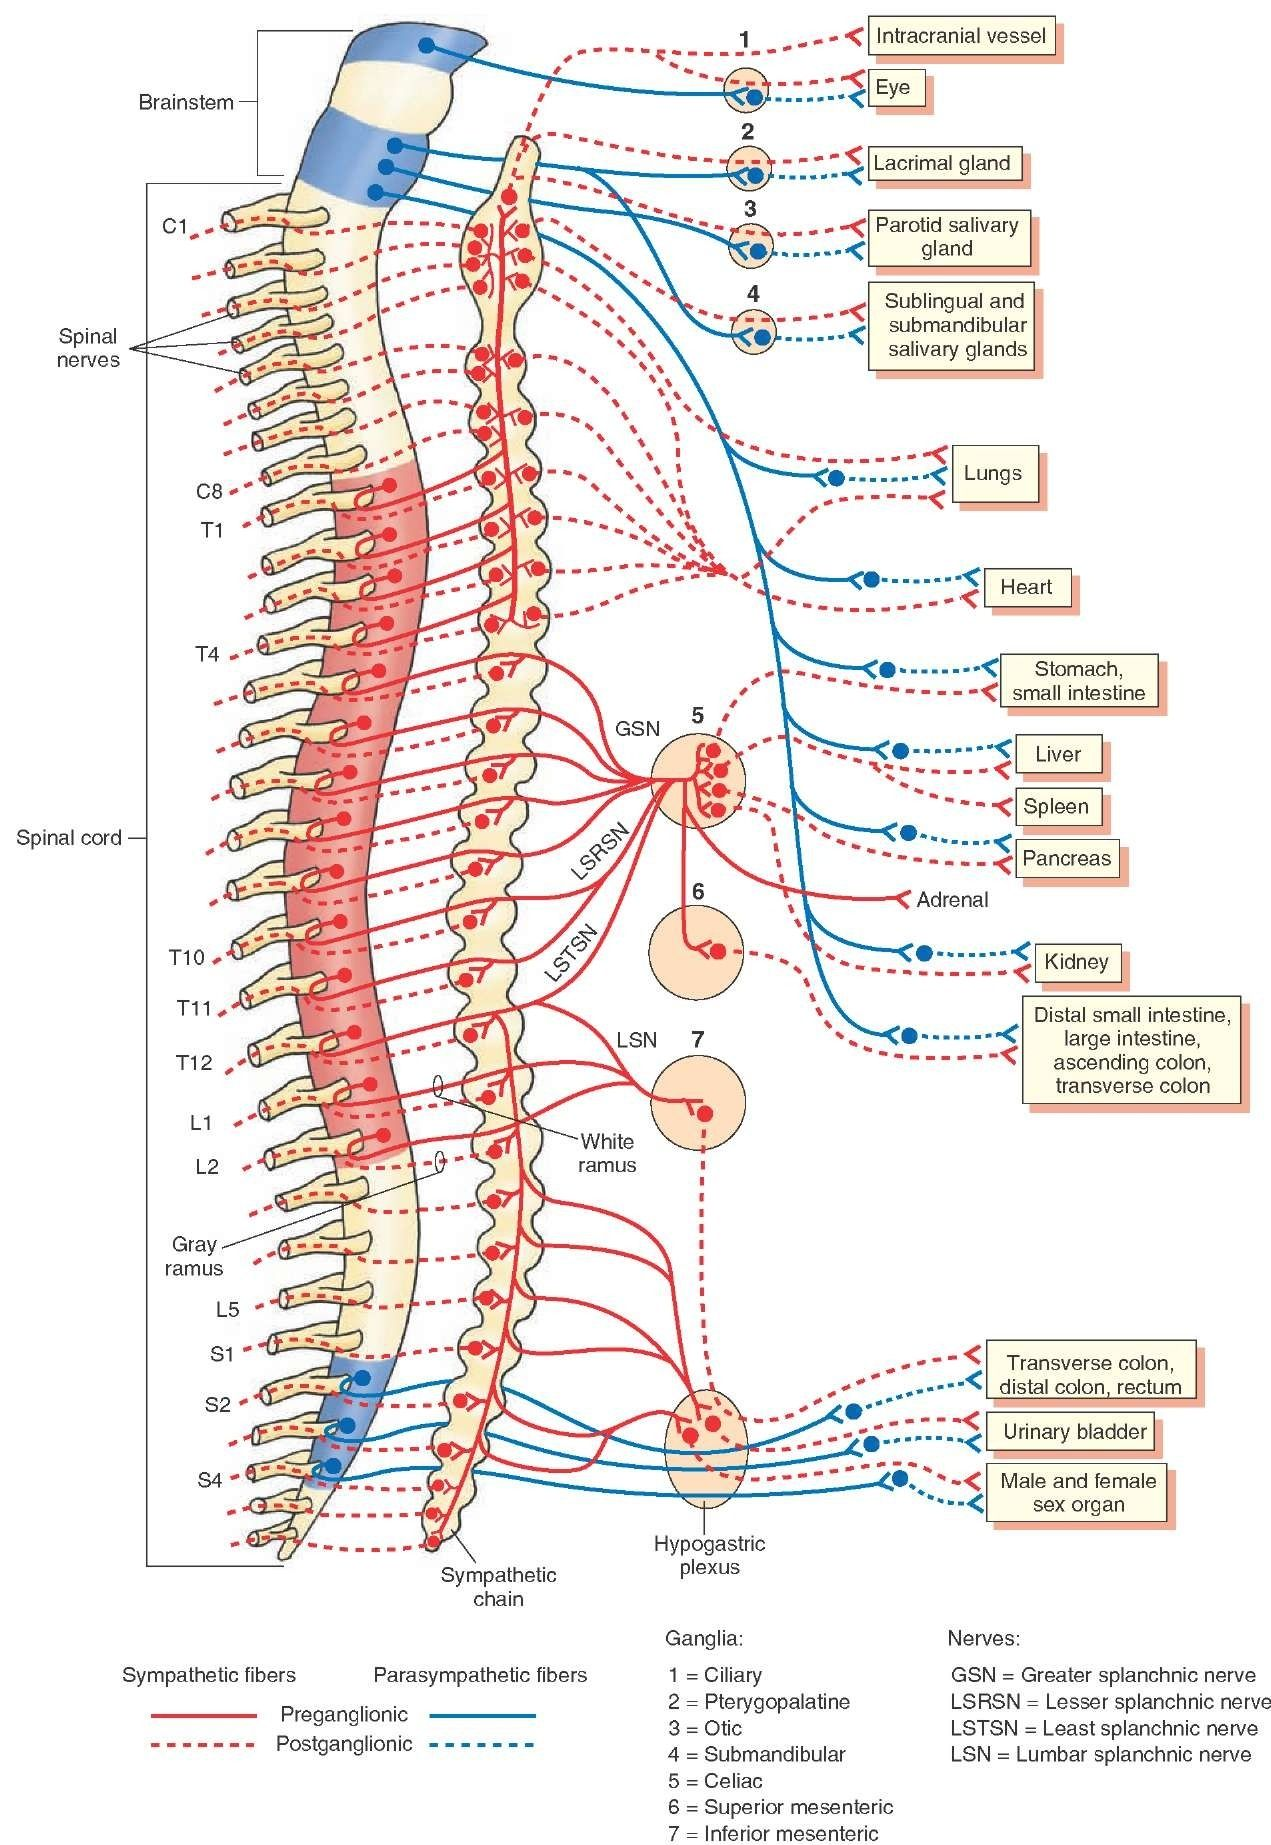 Nerve Innervation Of The Thoracic Spine The Autonomic Nervous System  Integrative Systems  Part